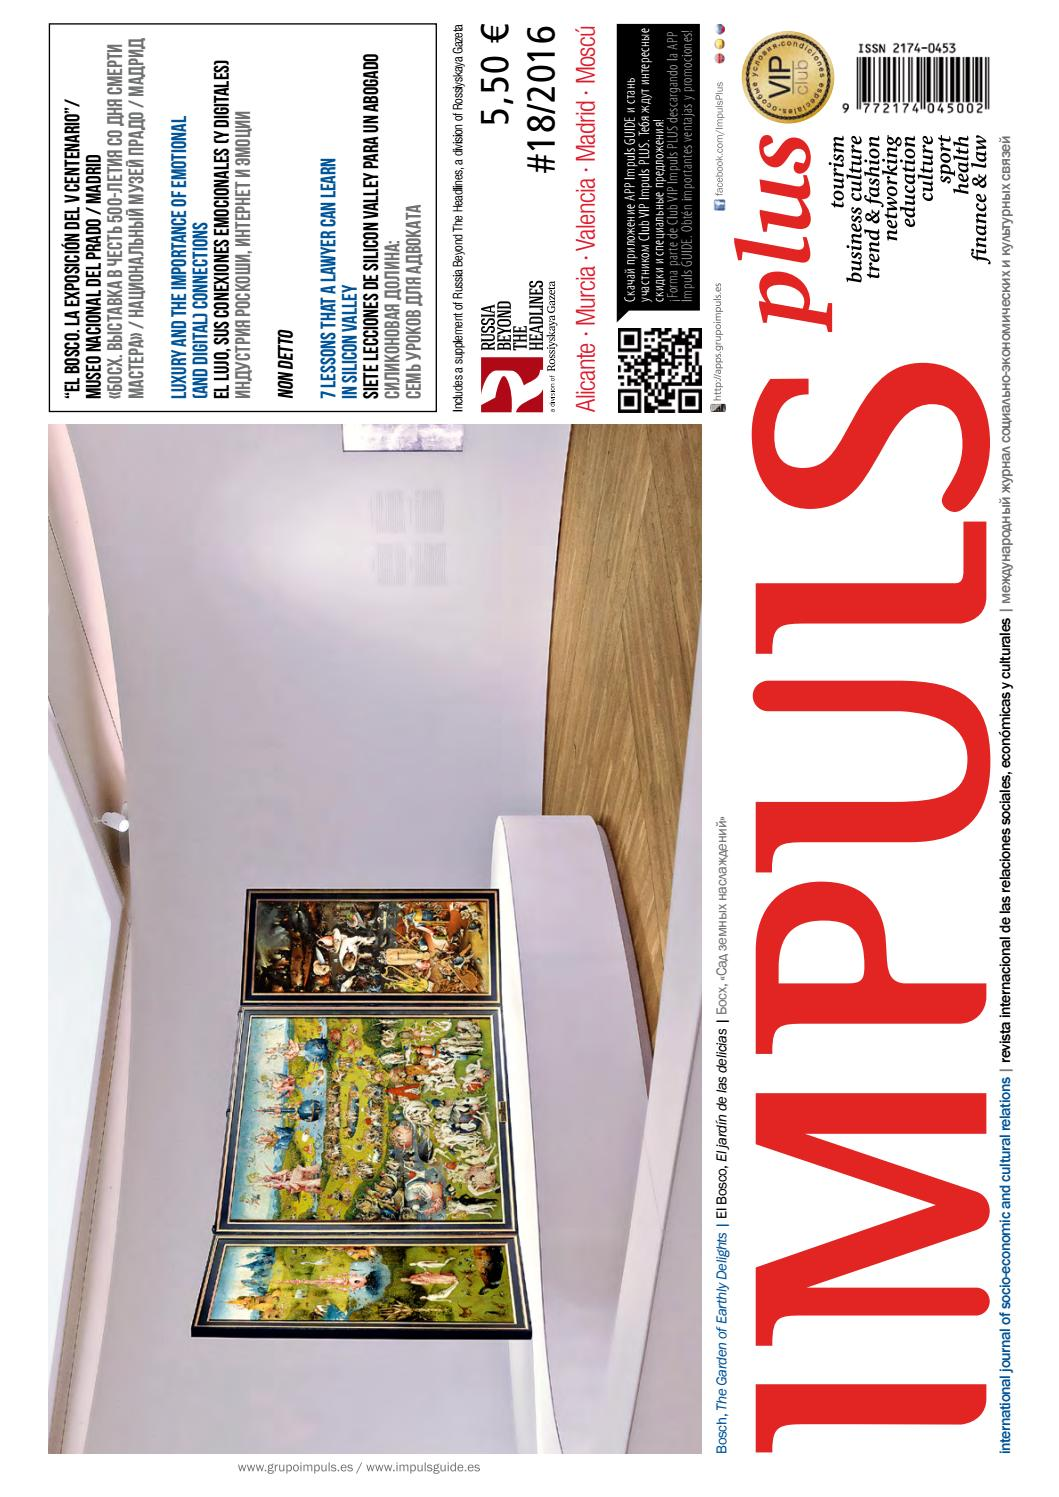 Revista Internacional Impus PLUS N.18 by Grupo IMPULS - issuu 14e23b22c2a